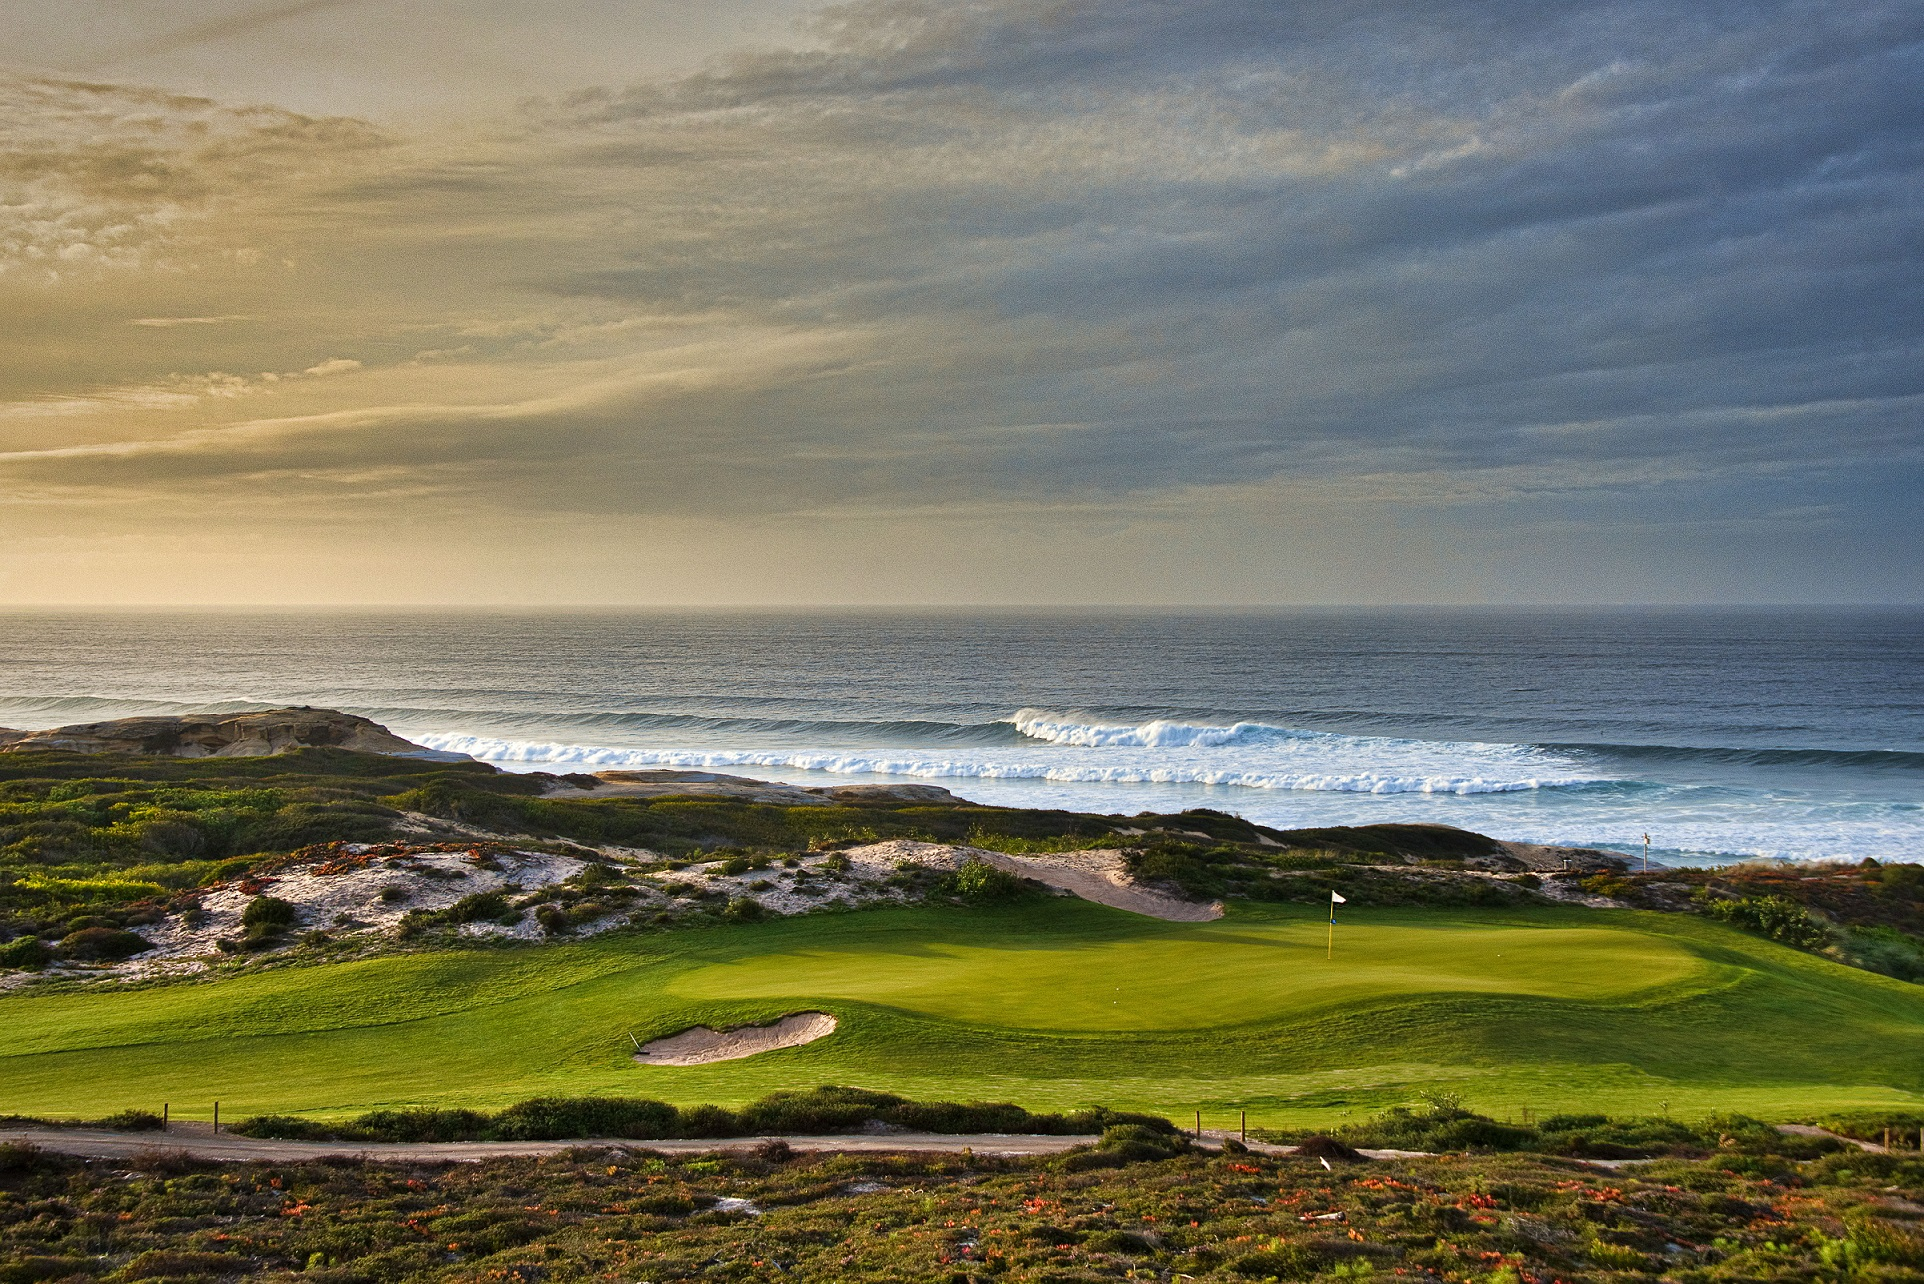 WEST CLIFFS CONTINUES TO CLIMB IN LATEST EUROPEAN TOP 20